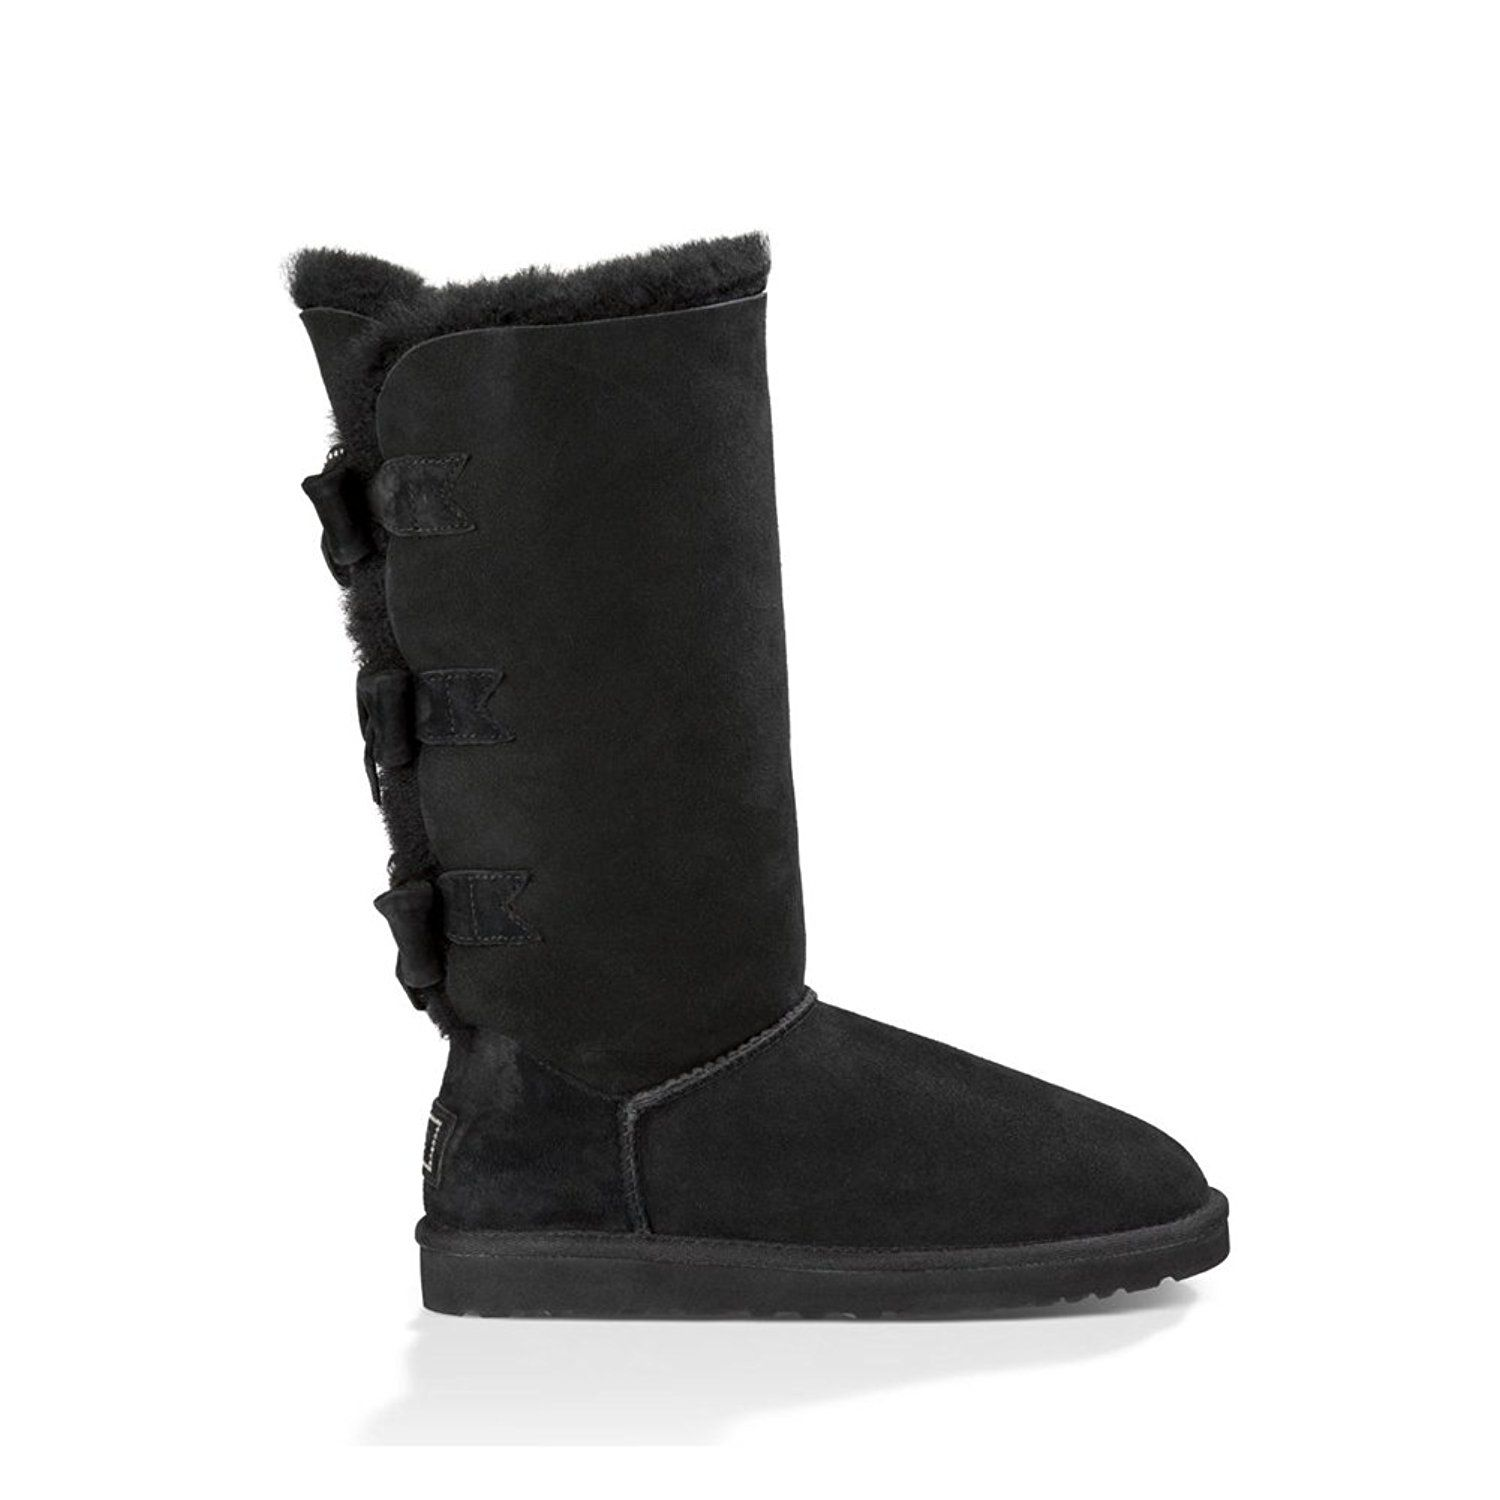 UGG Women's Amelie * Additional details at the pin image, click it  : Boots